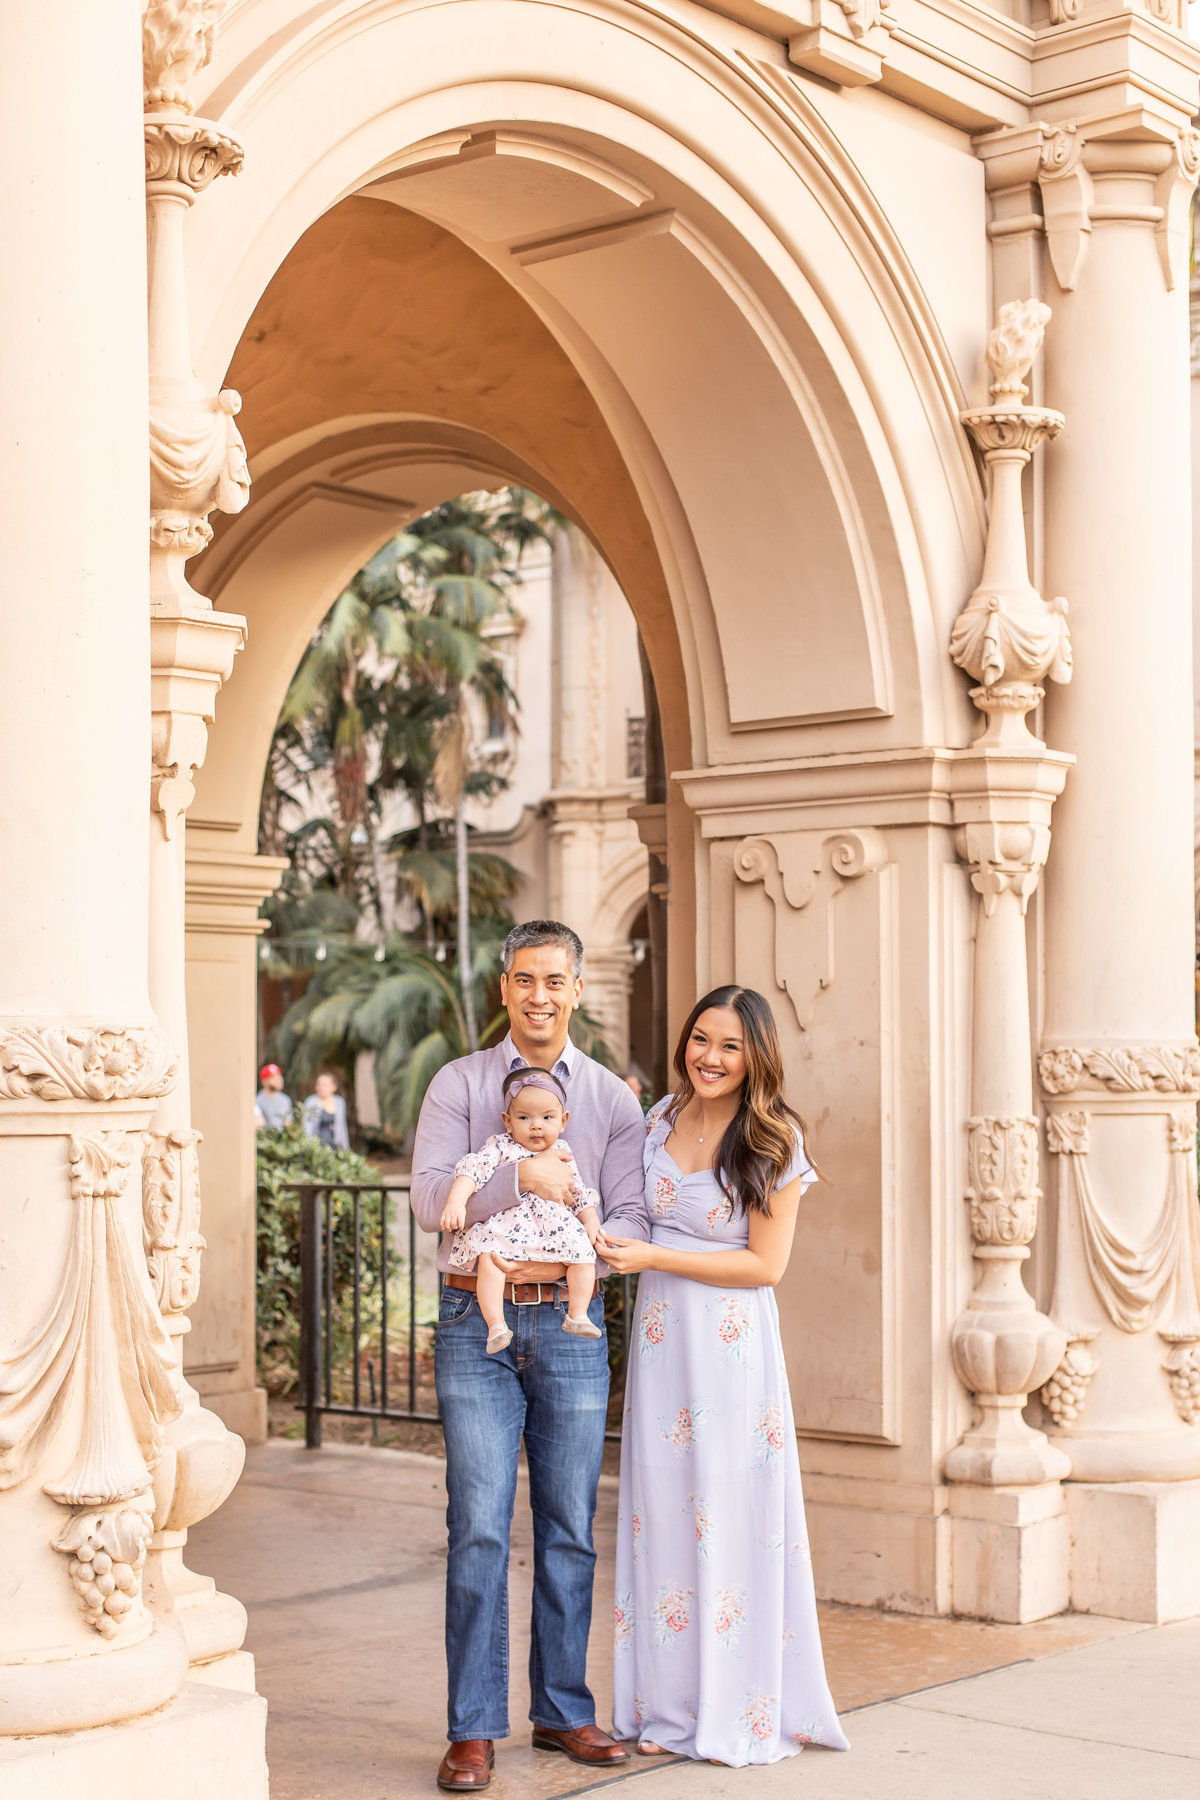 San Diego Wedding Photographer - San Diego Photographer - San Diego Family Photographer - San Diego family session - Southern California family photographer  - balboa park family session